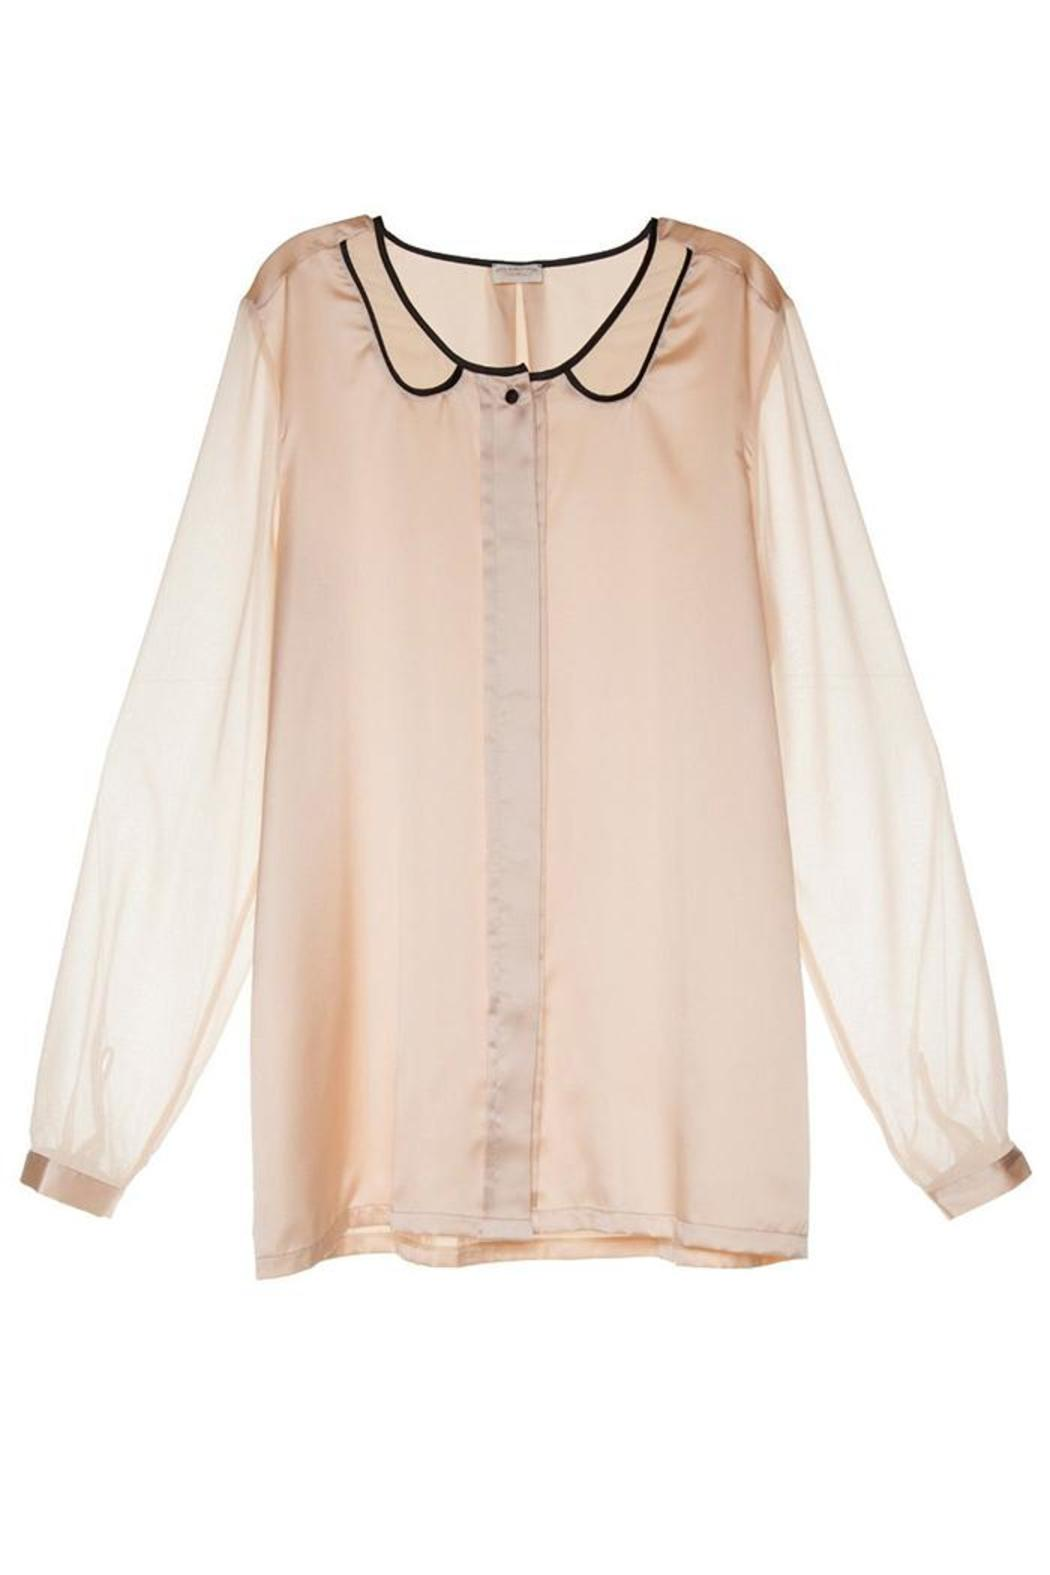 Cosabella Sophisticated Longsleeve Top - Main Image